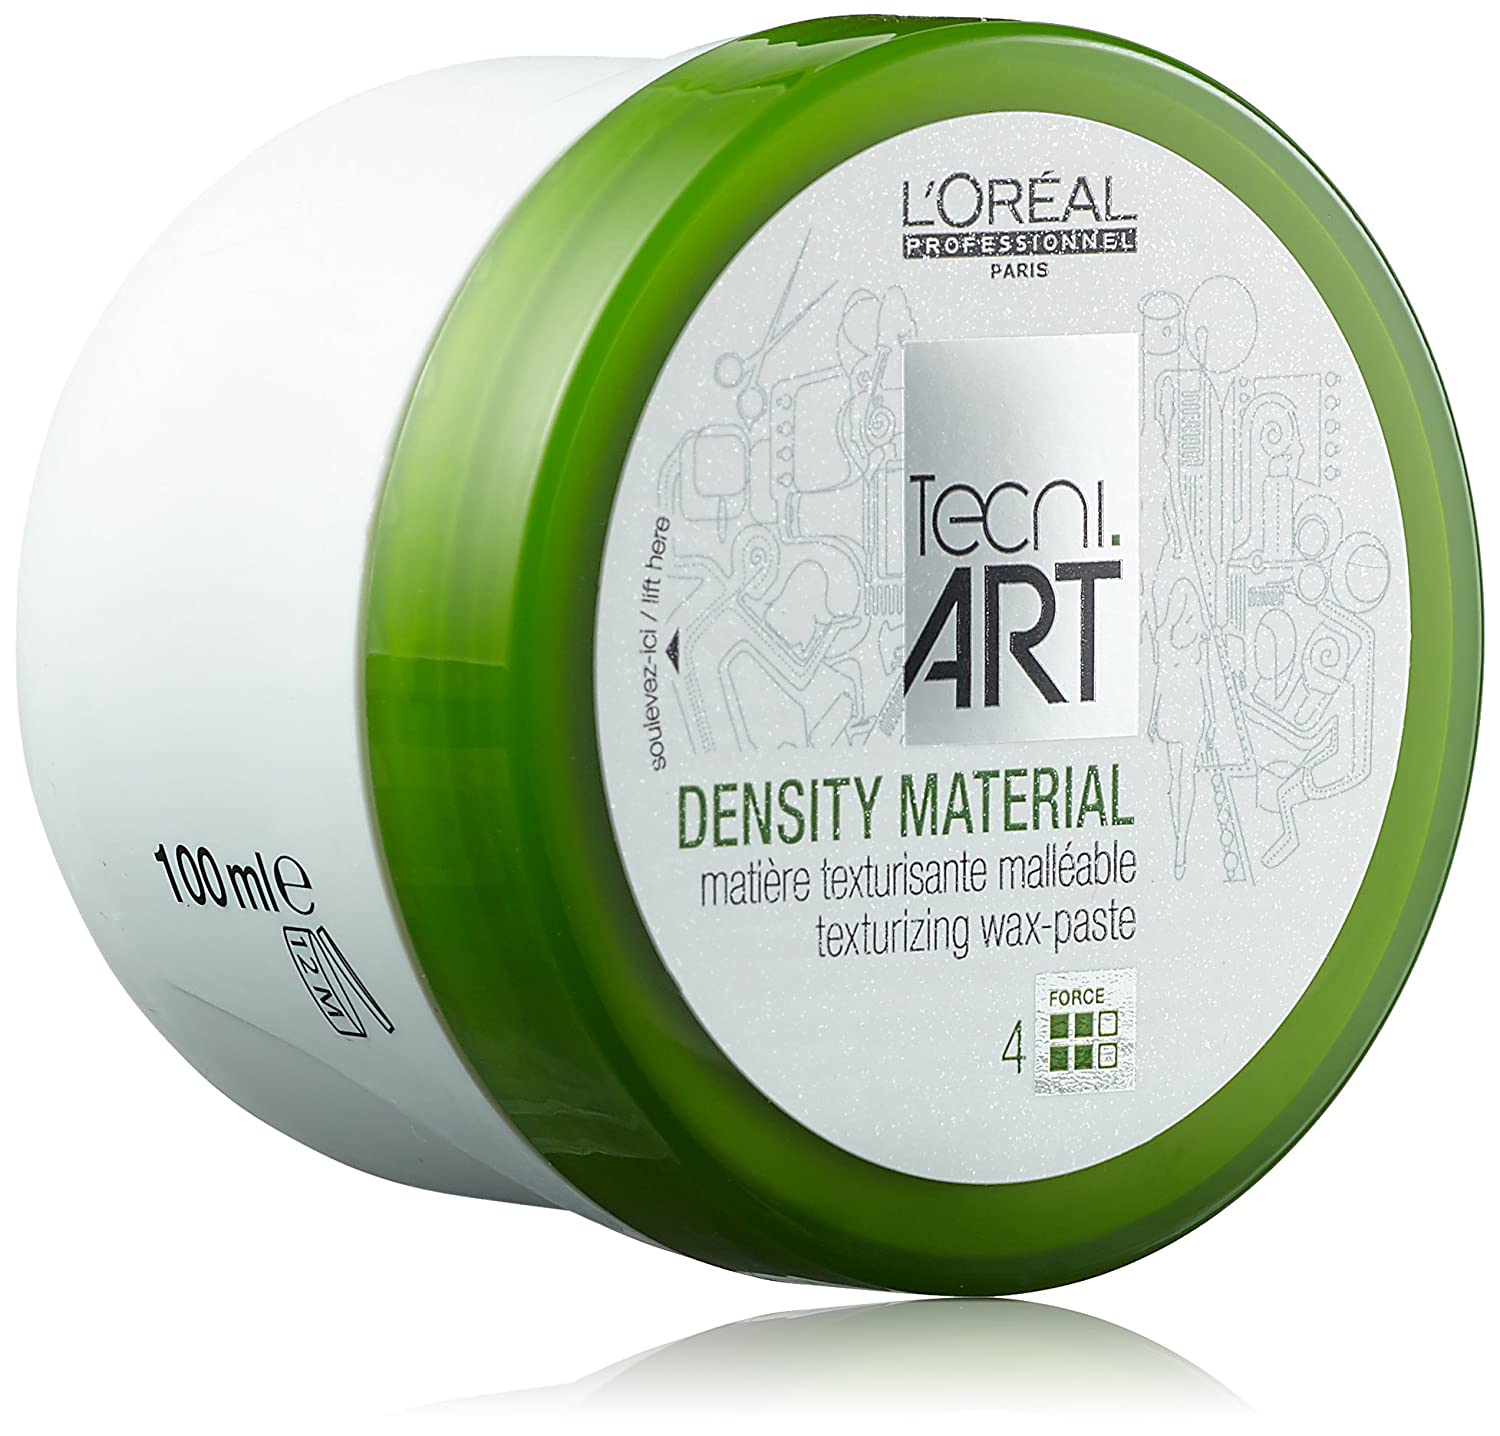 Professionnel Tecni.Art Play Ball Density Material - 100ml/3.4oz L' oreal 4345